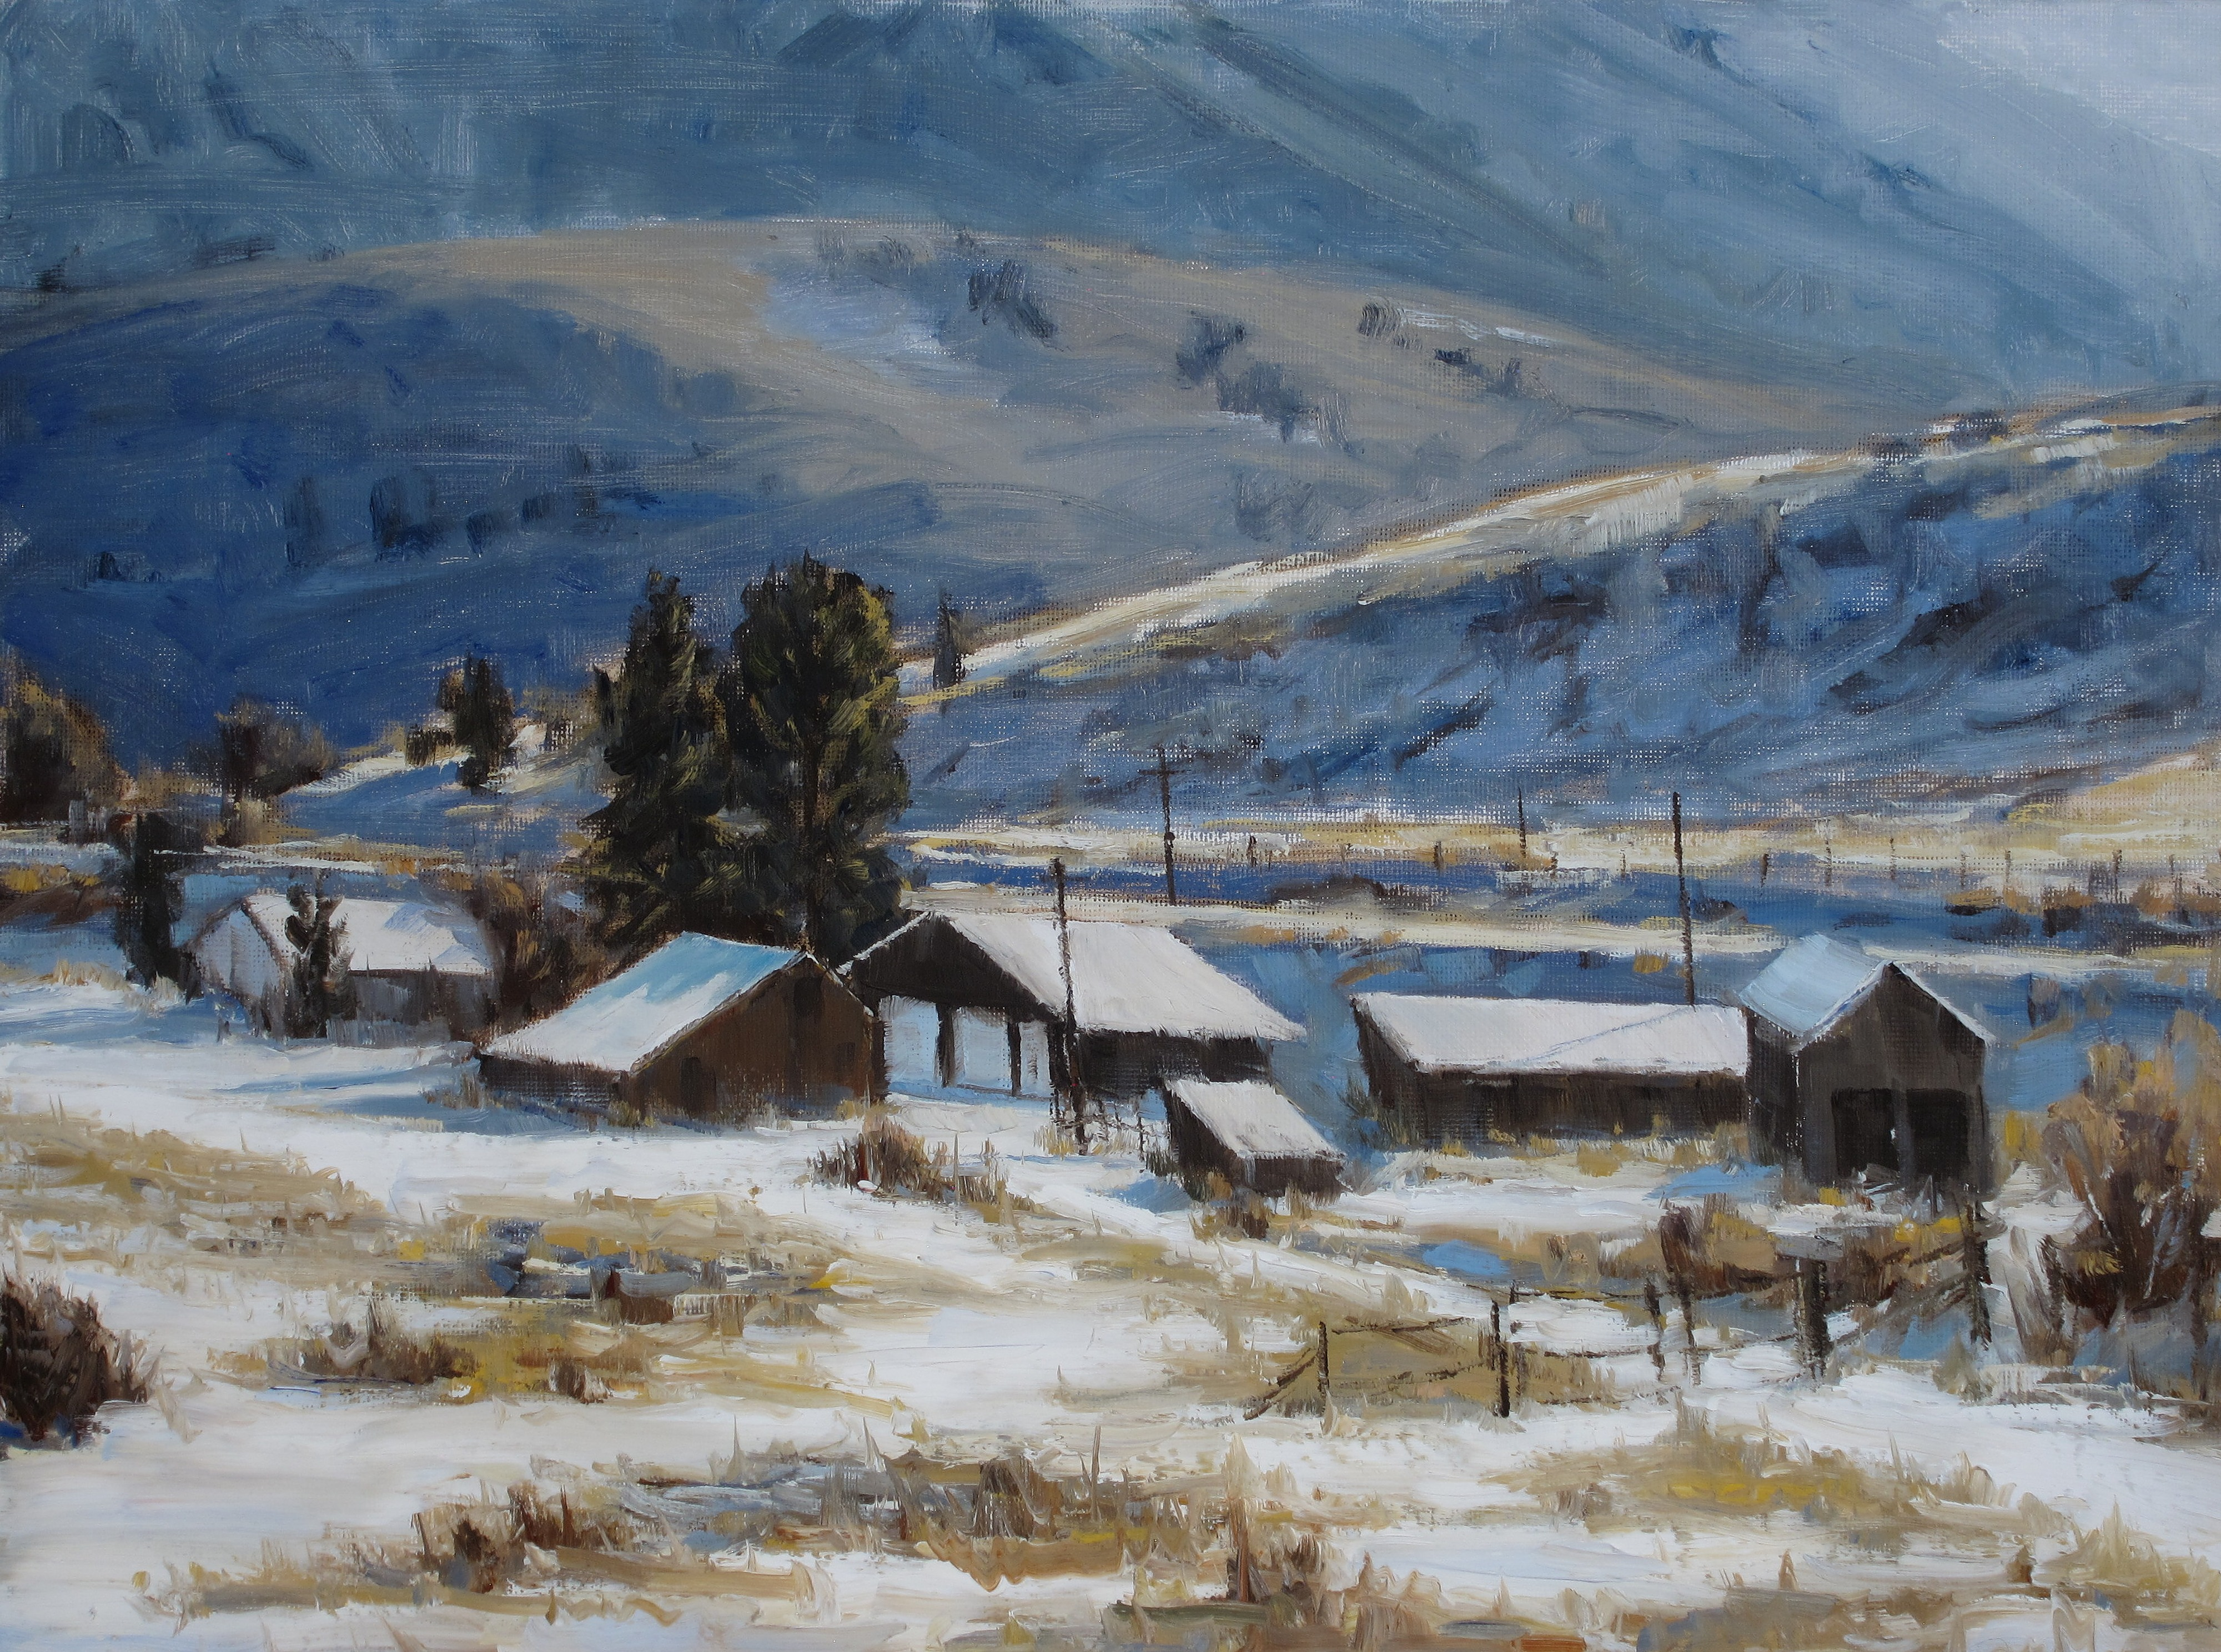 Chilly Morning Lyons Homestead by Greta Balzer | ArtworkNetwork.com